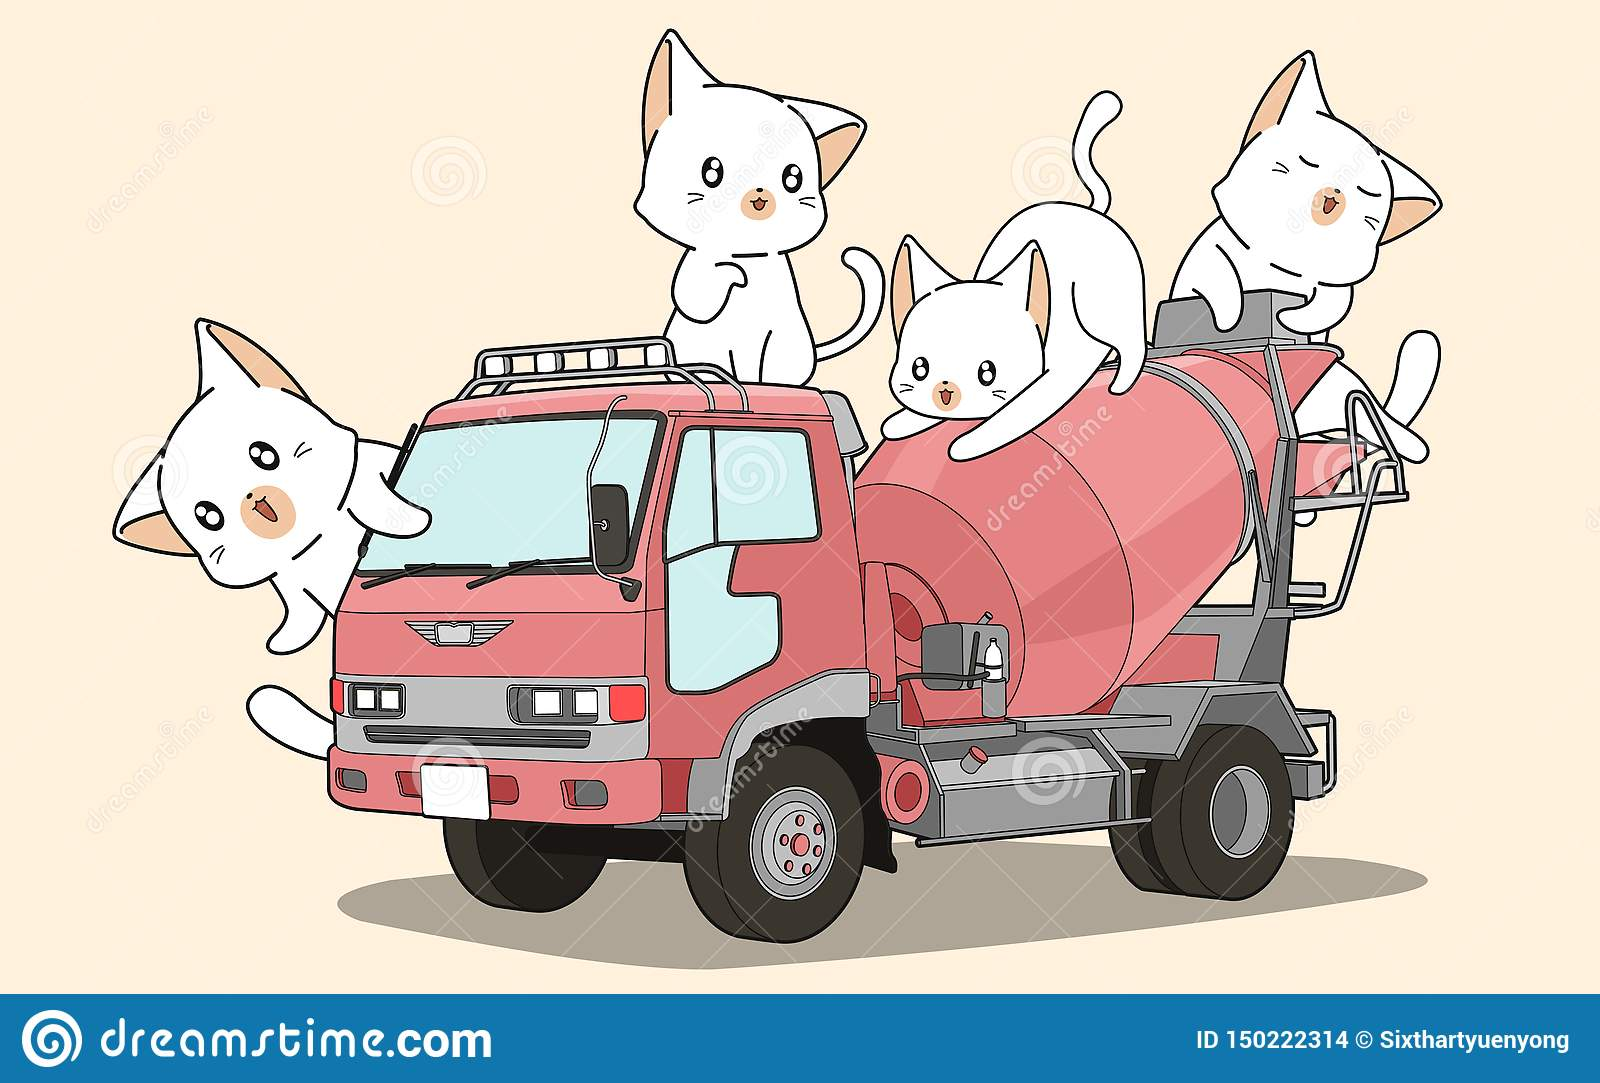 Cute Cats On Cement Mixer Truck Stock Vector - Illustration of